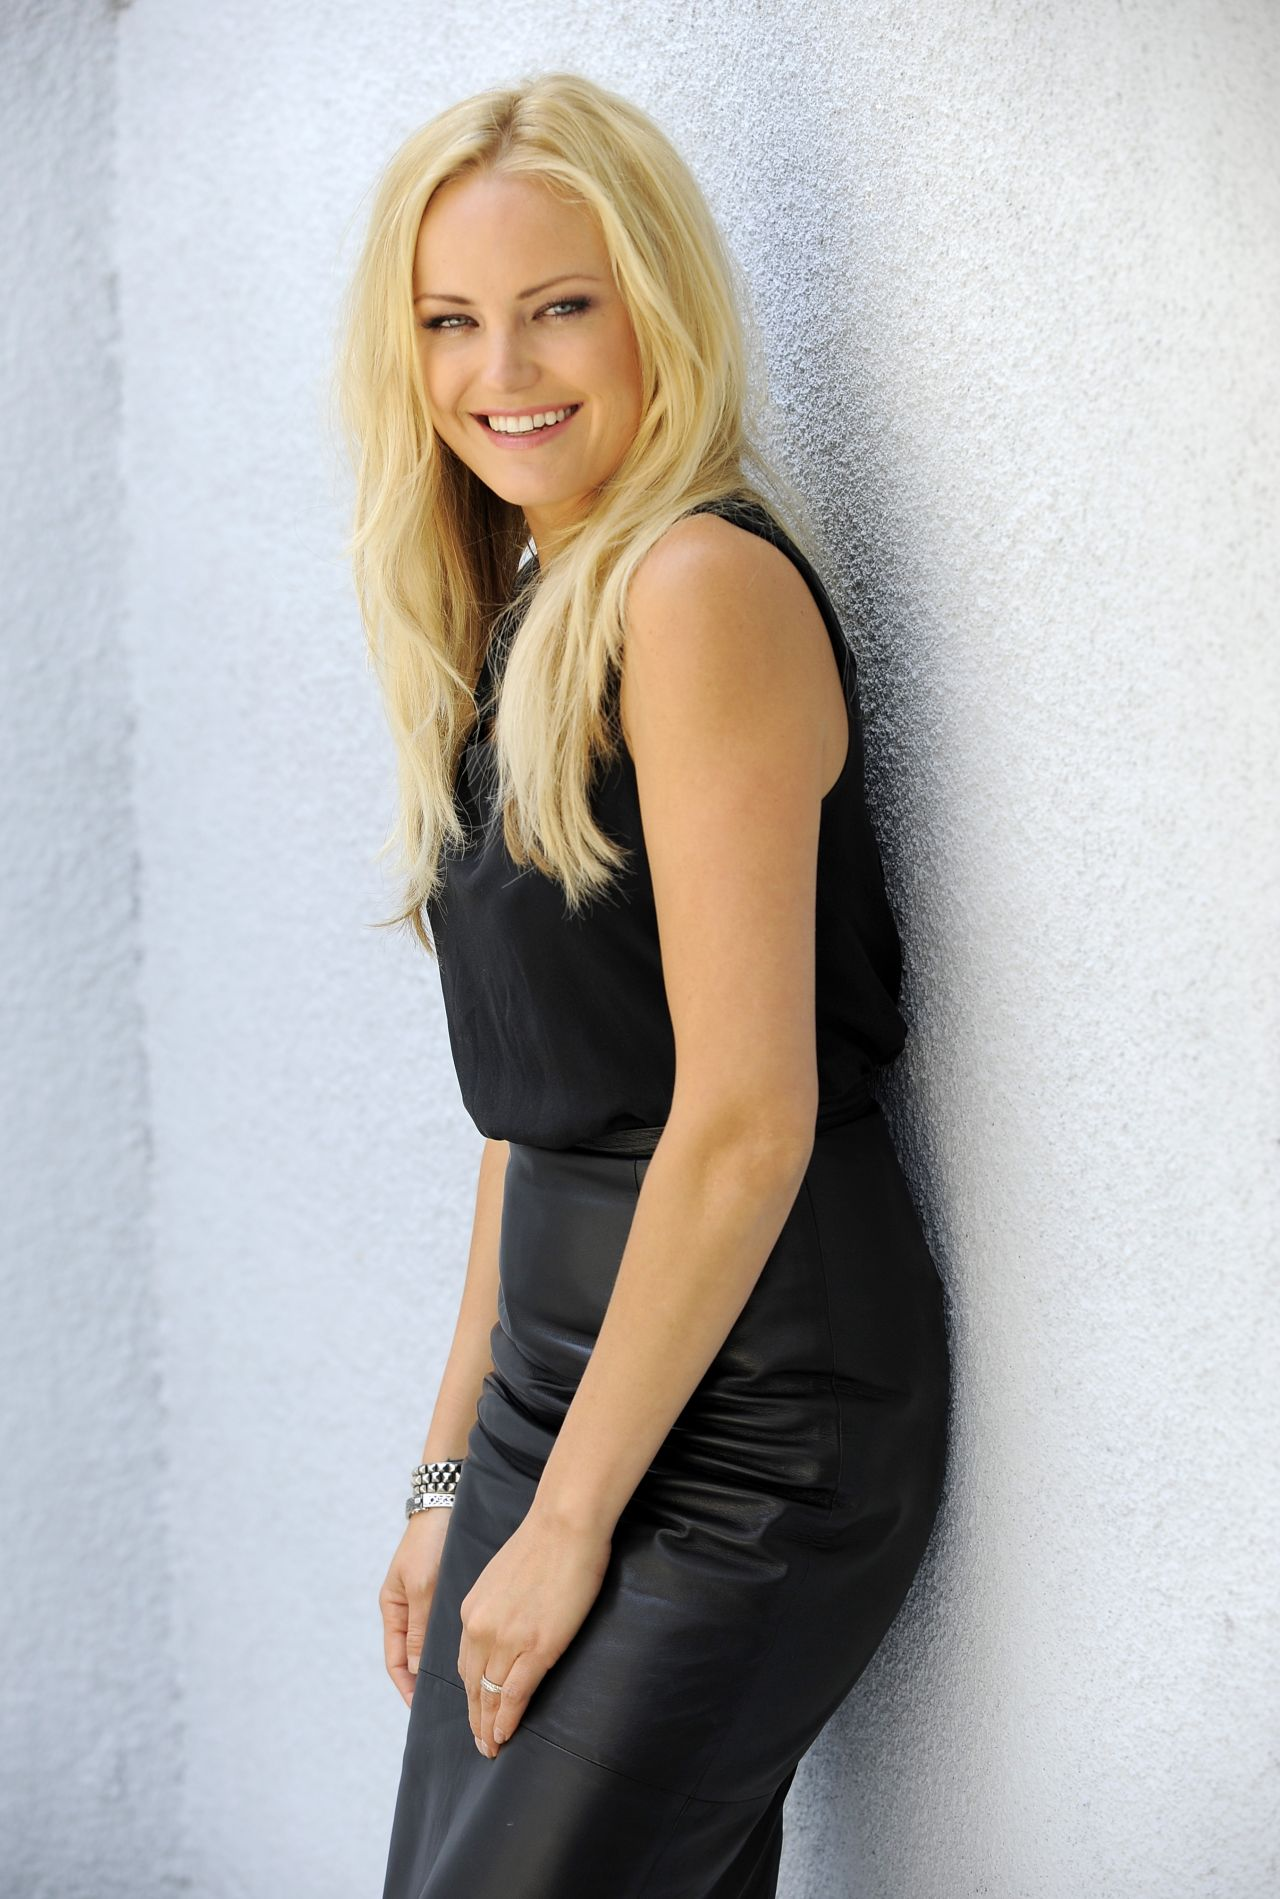 Malin Akerman Photoshoot By Chris Pizzello - Portraits -4713